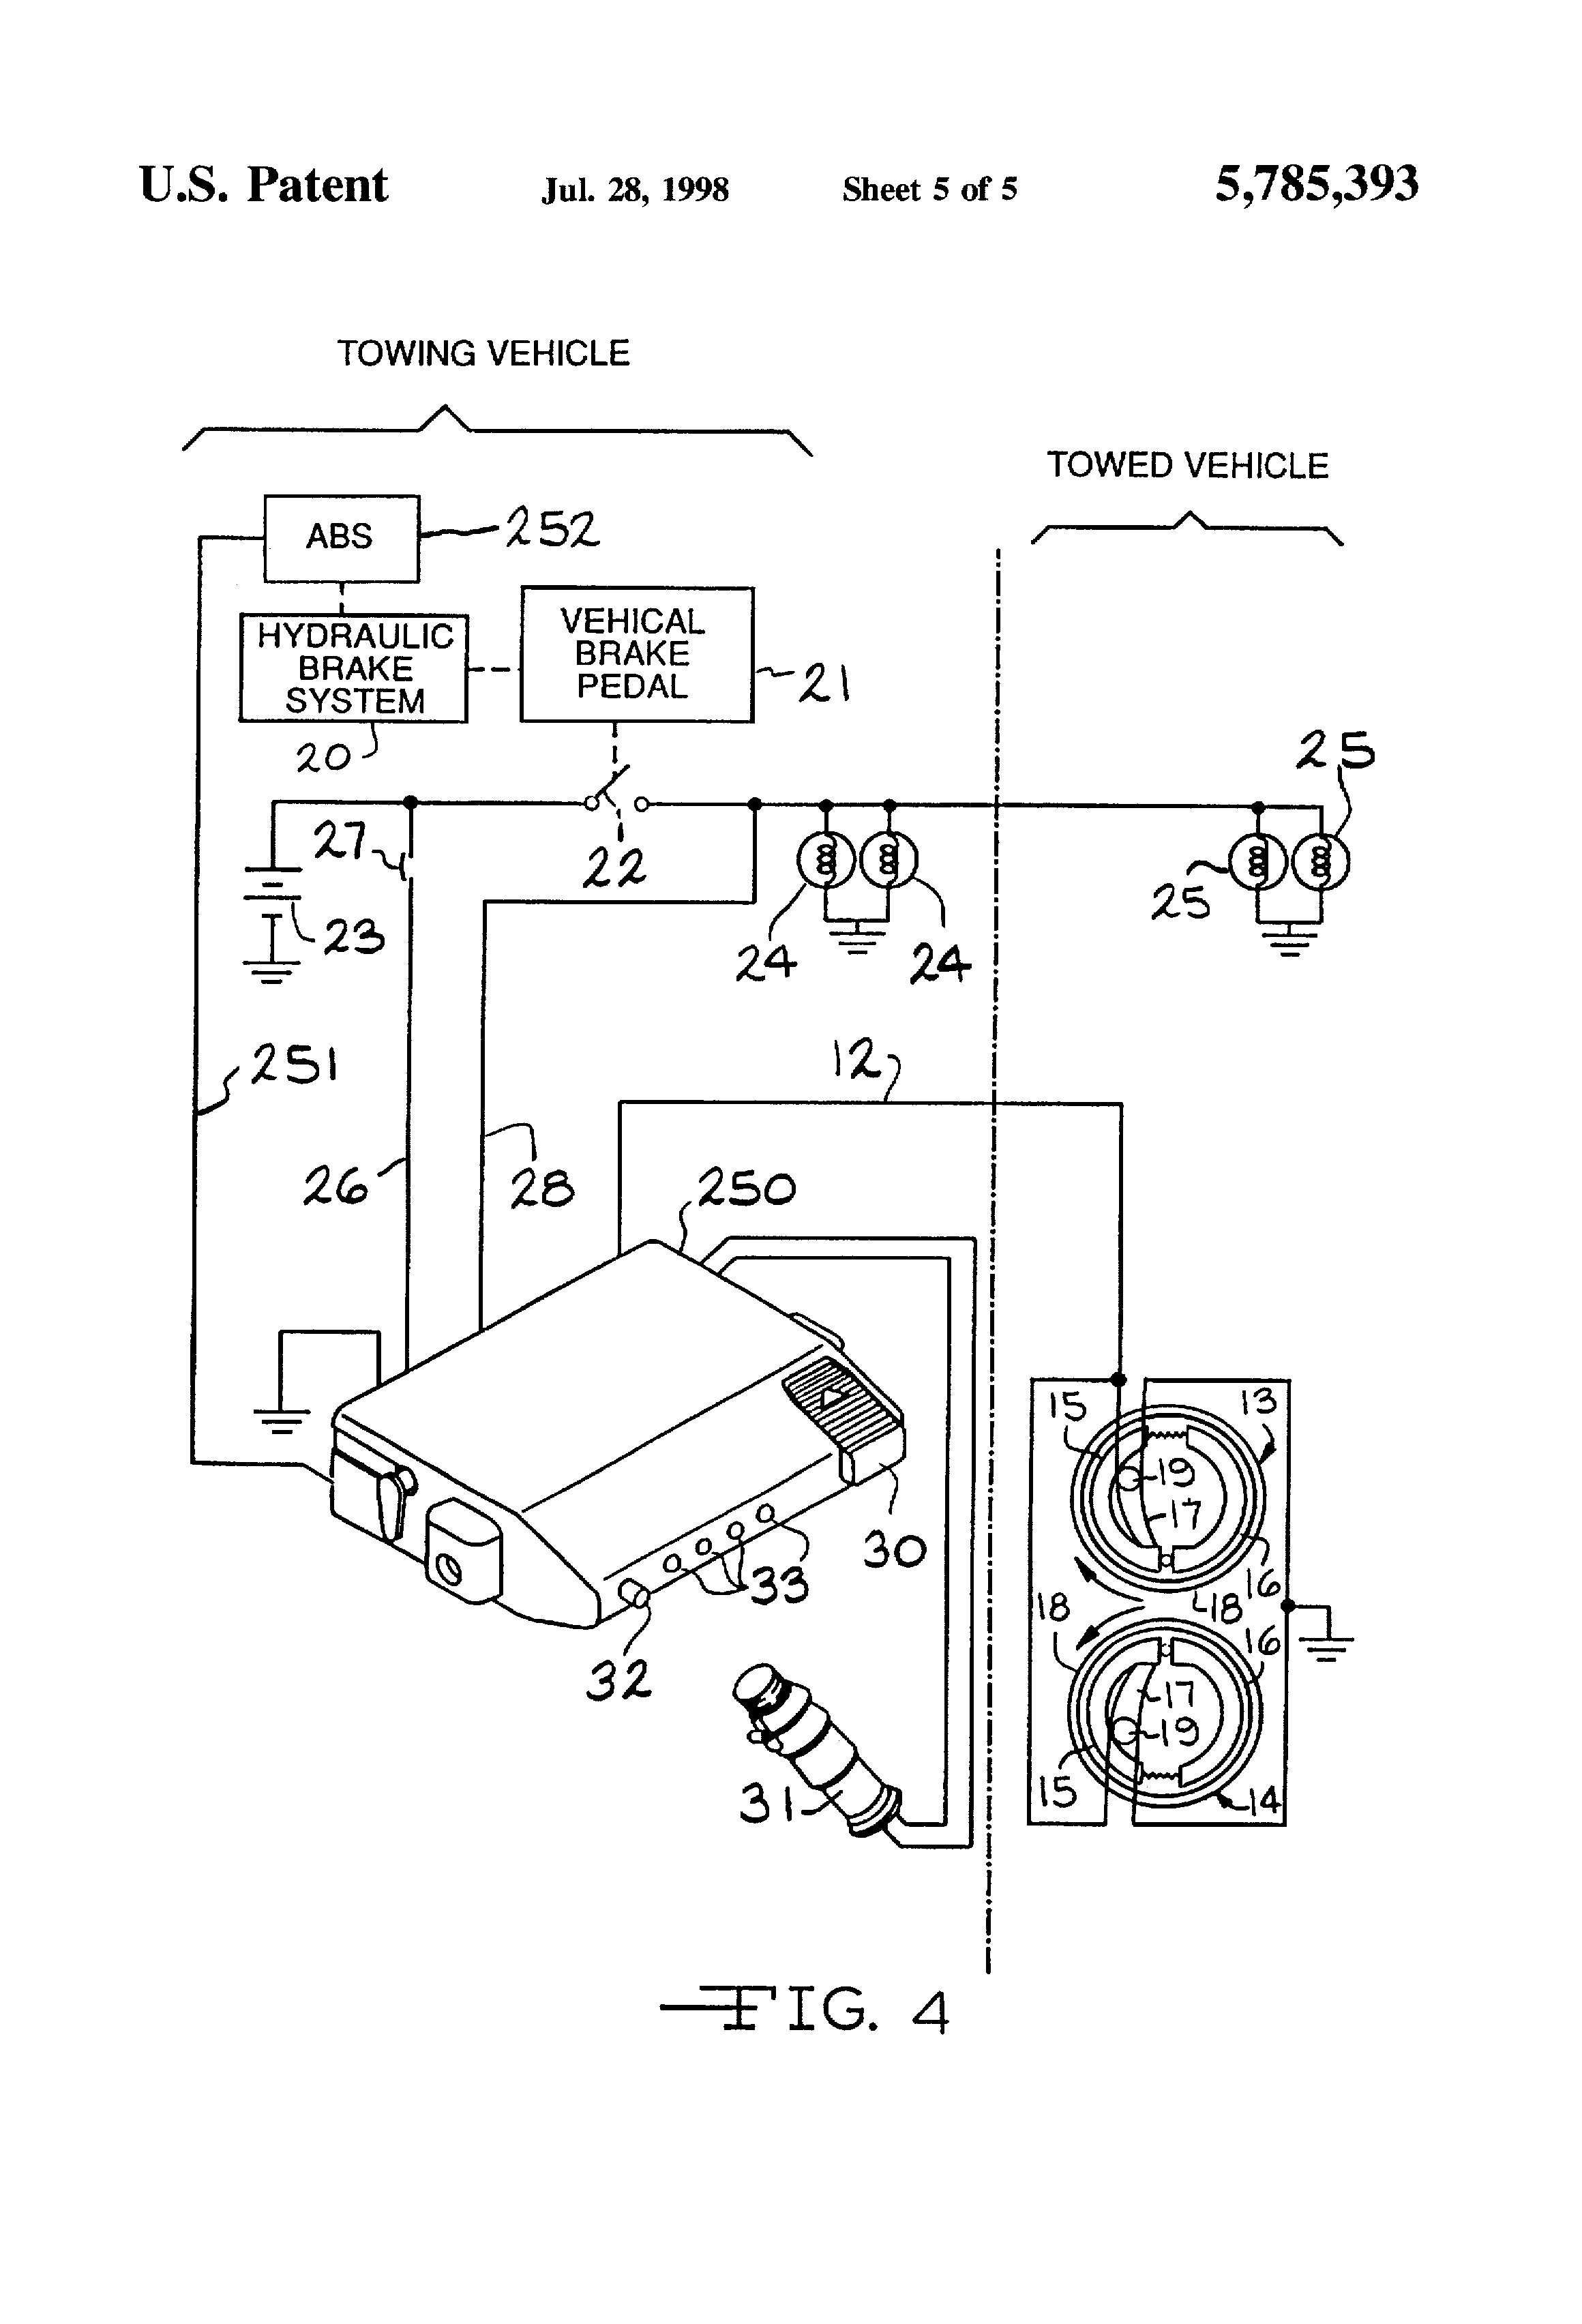 reese pod wiring diagram circuit diagram template rh xcudflre computerhousecalls info reese electric brake controller wiring diagram reese brakeman wiring diagram